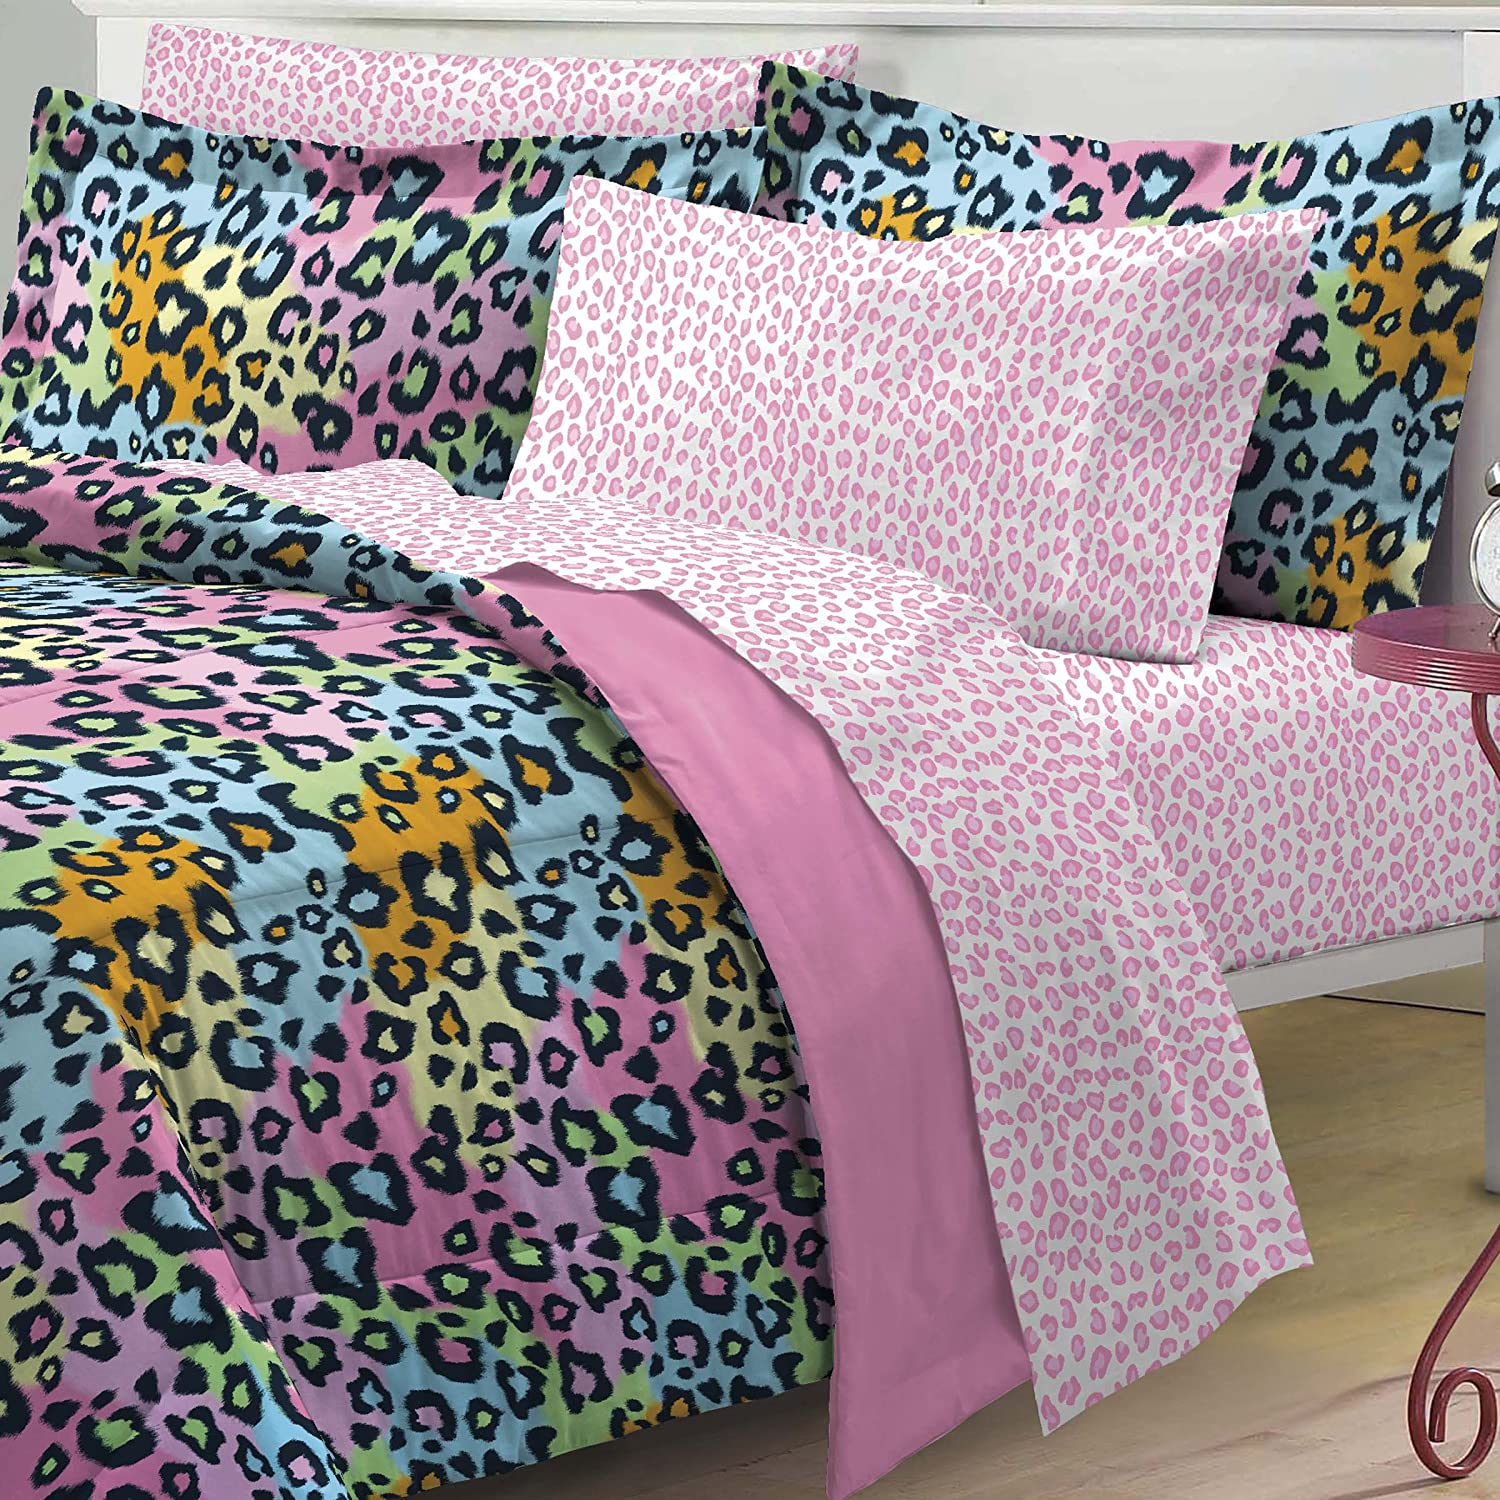 Pink leopard print bedding - Amazon Com My Room Neon Leopard Ultra Soft Microfiber Girls Comforter Set Multi Colored Twin Twin X Large Home Kitchen